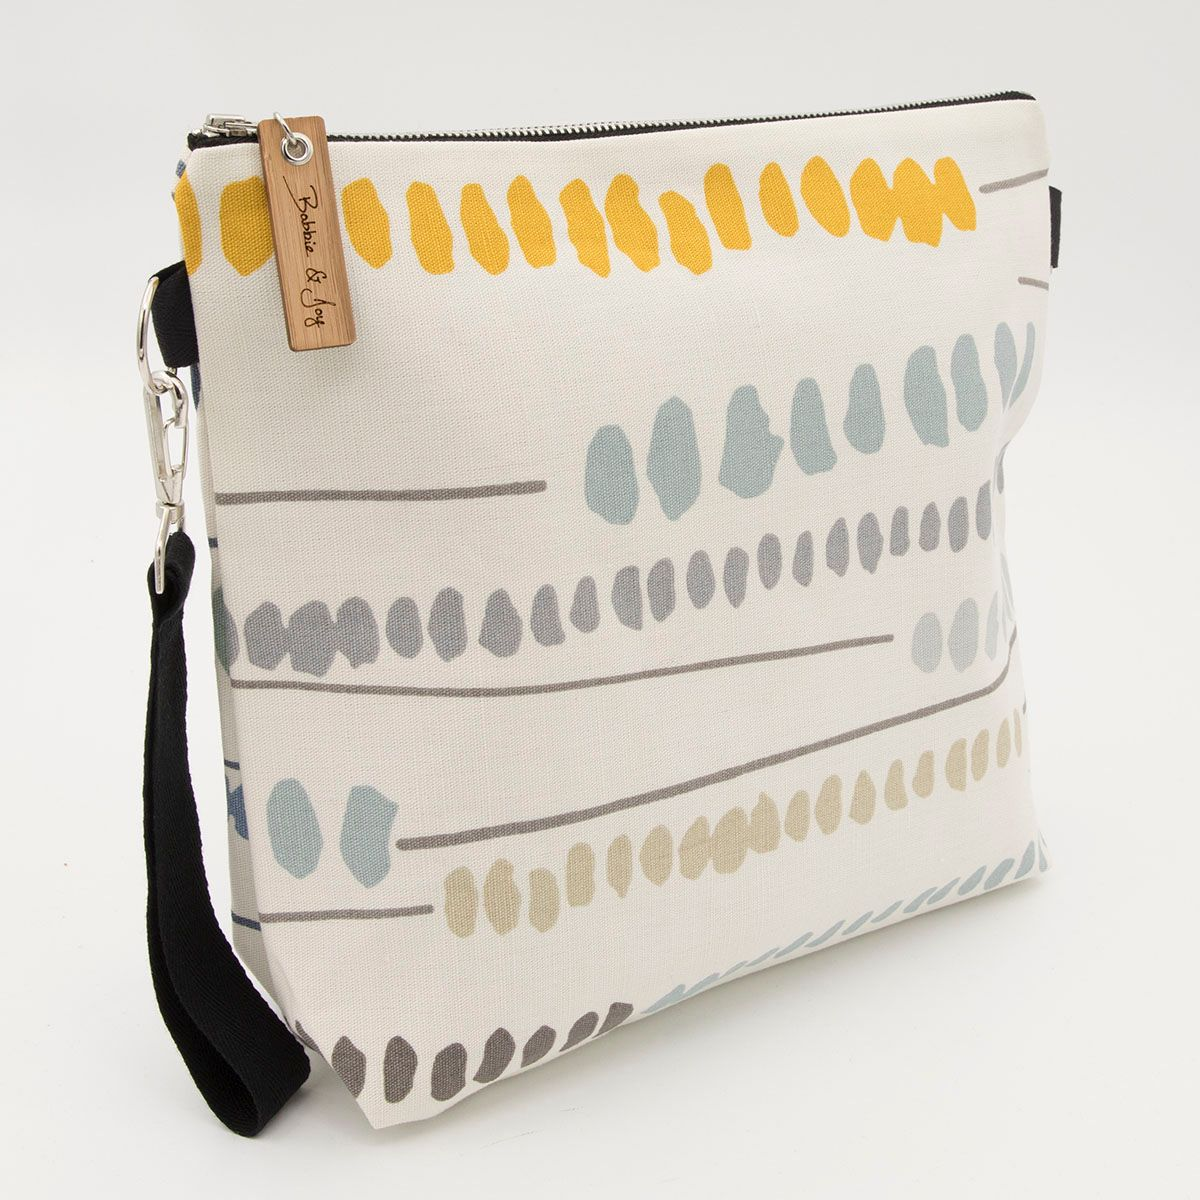 Bag 9 dots and lines yellow reclaimed fabric project bag wrist strap view 1